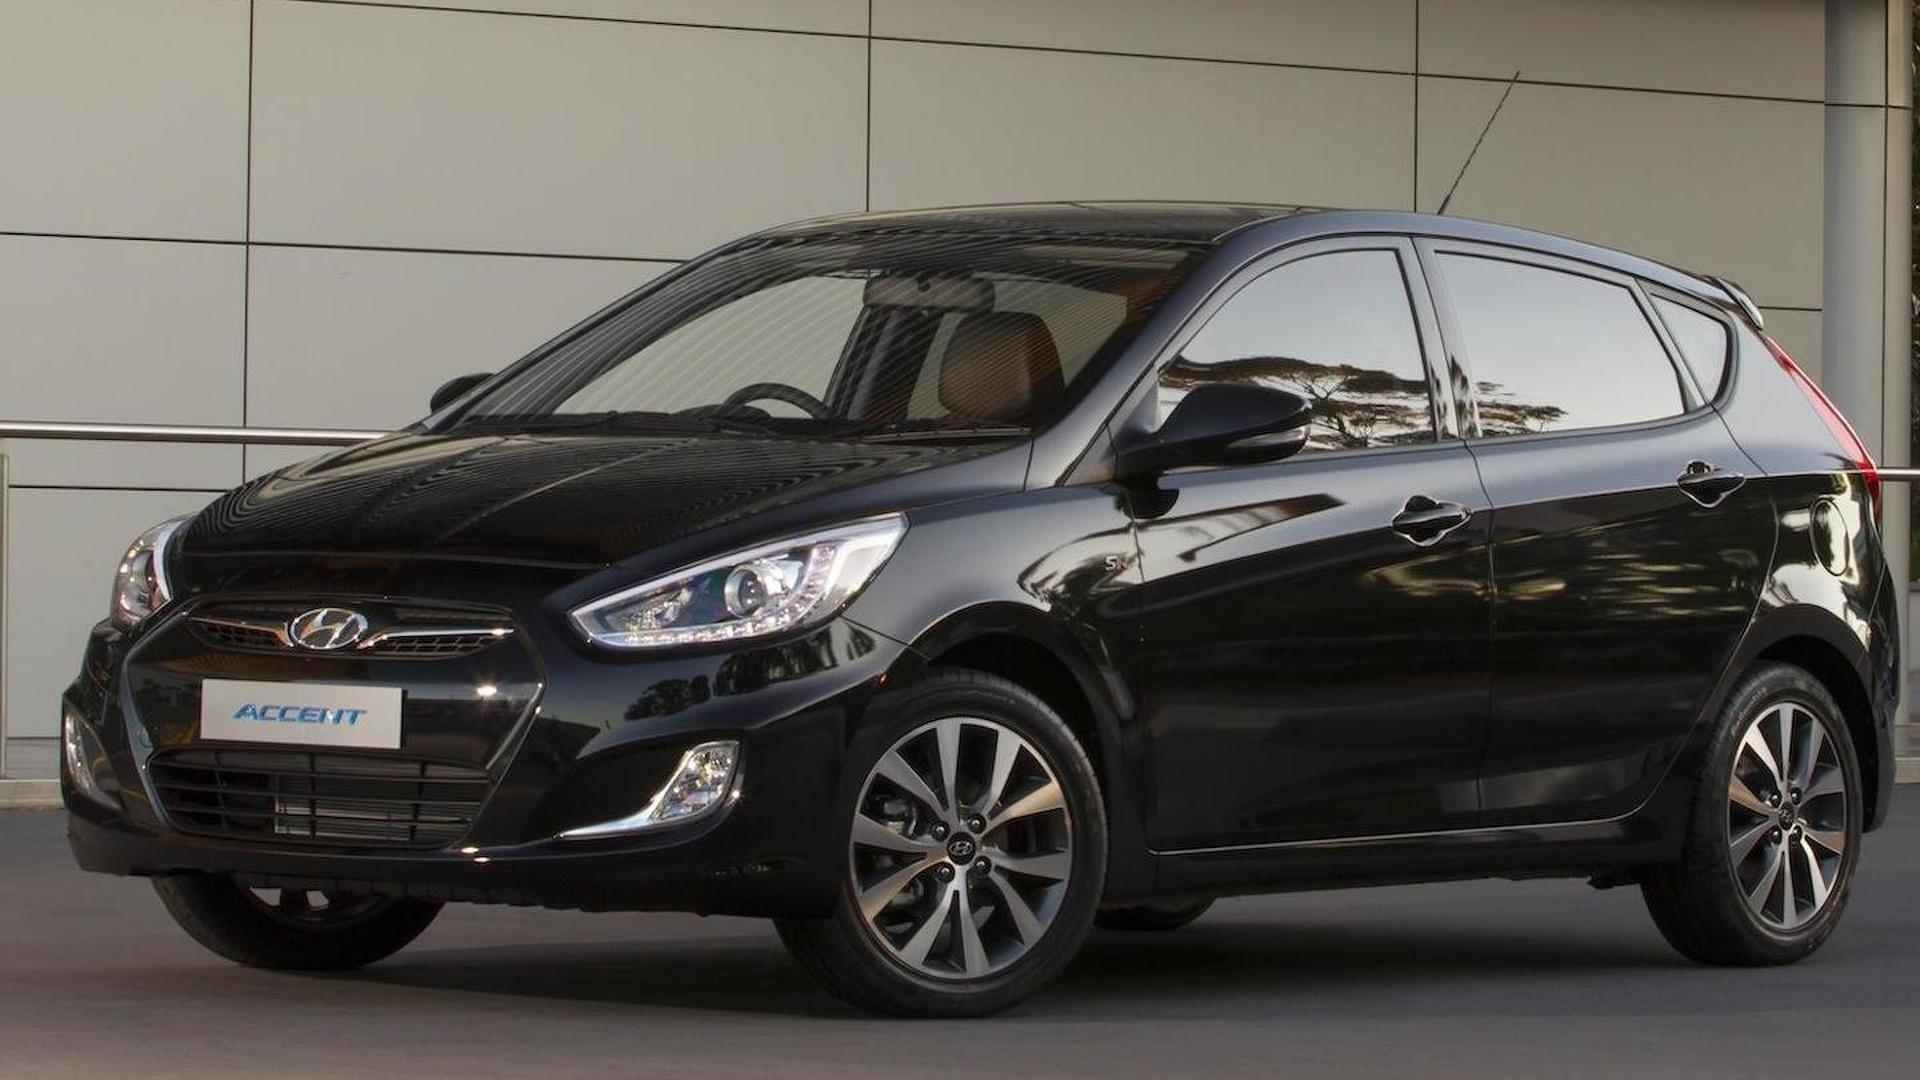 carbonoctane all accent dubai middle launch for east urban hyundai ready ext new uae gets news gray